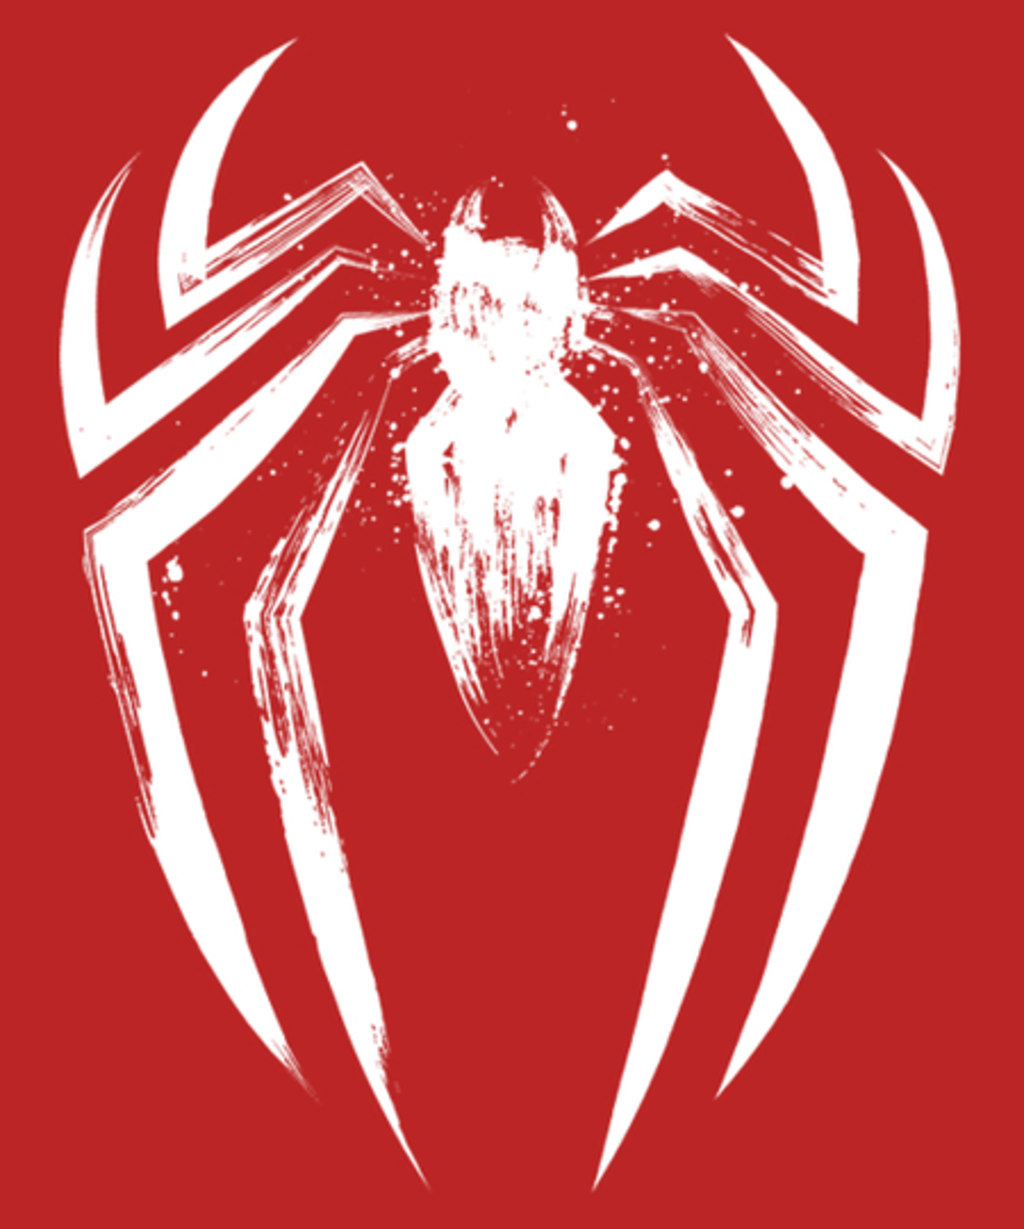 Qwertee: I am the Spider